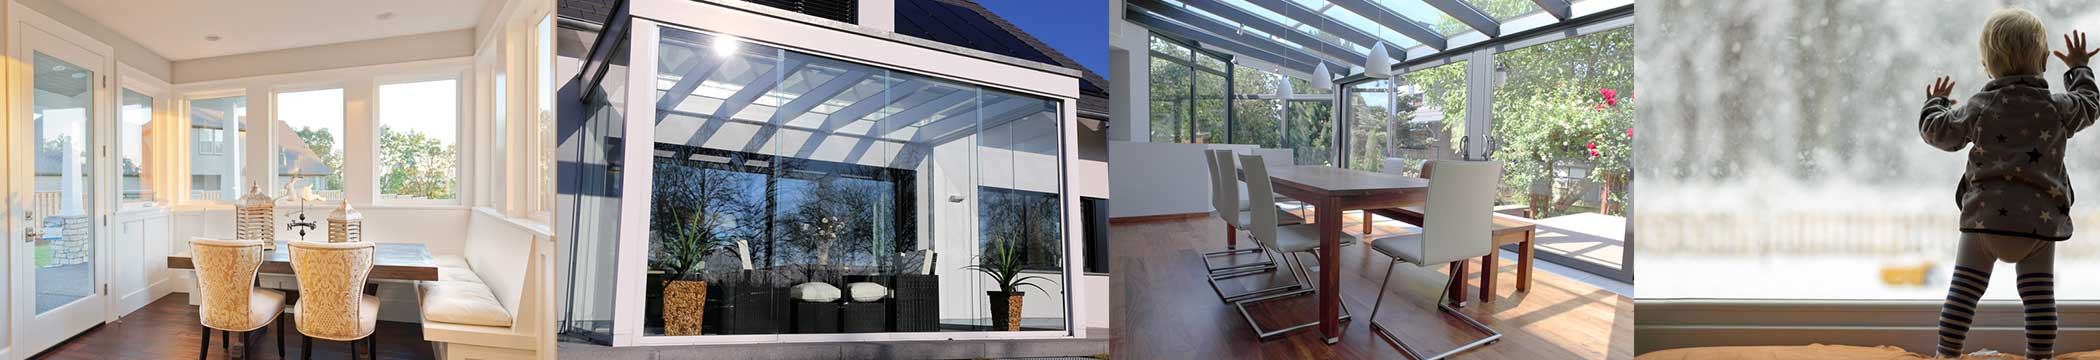 Conservatory Window Film Banner